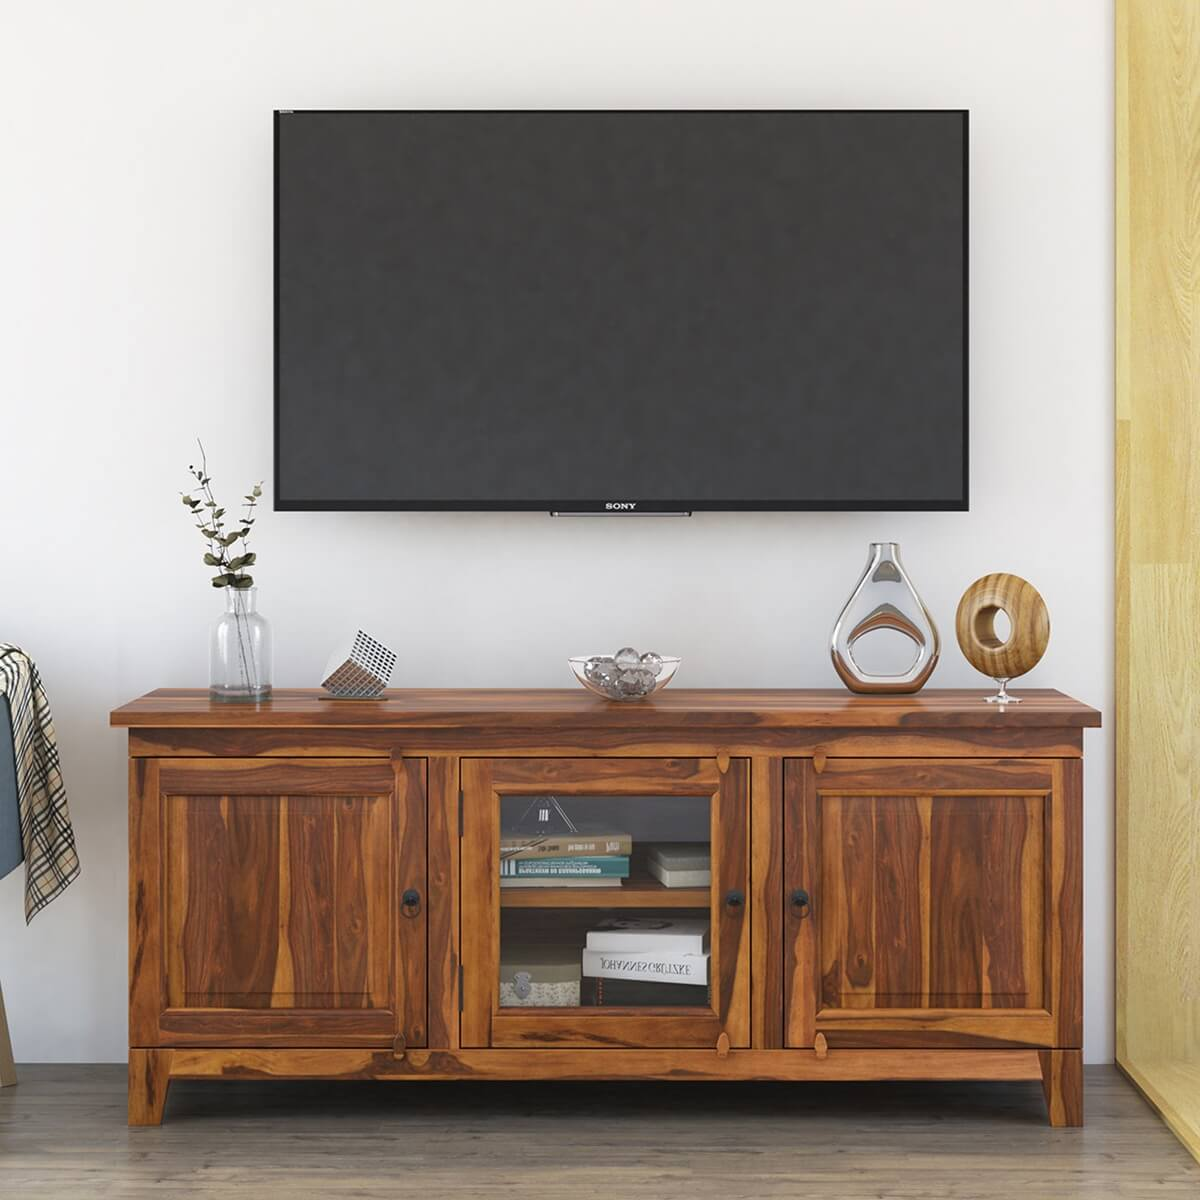 Rustic media console large solid wood tv stand cabinet